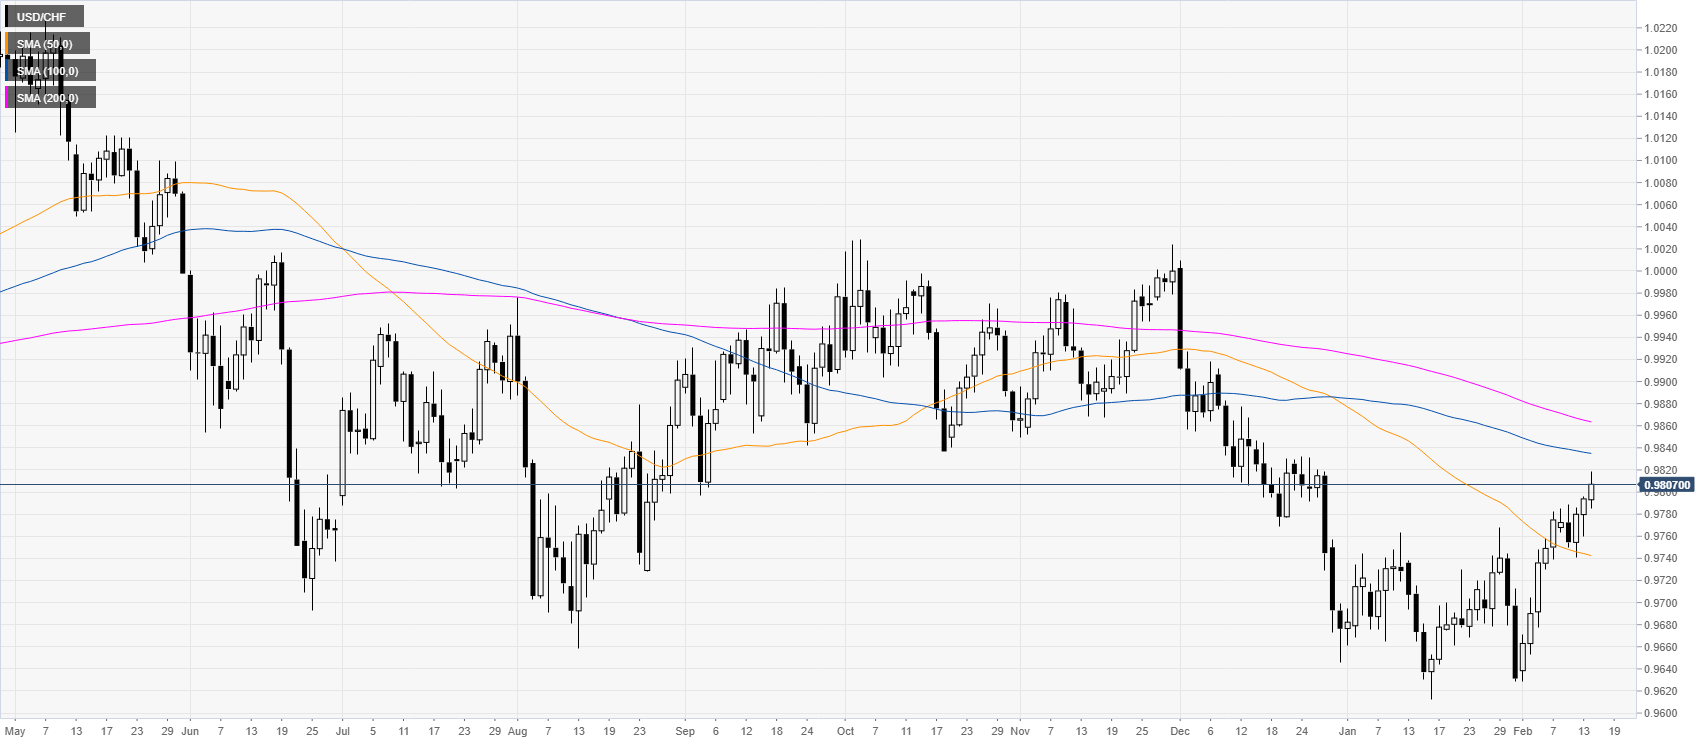 https://editorial.fxstreet.com/miscelaneous/daily-637172891694862300.png